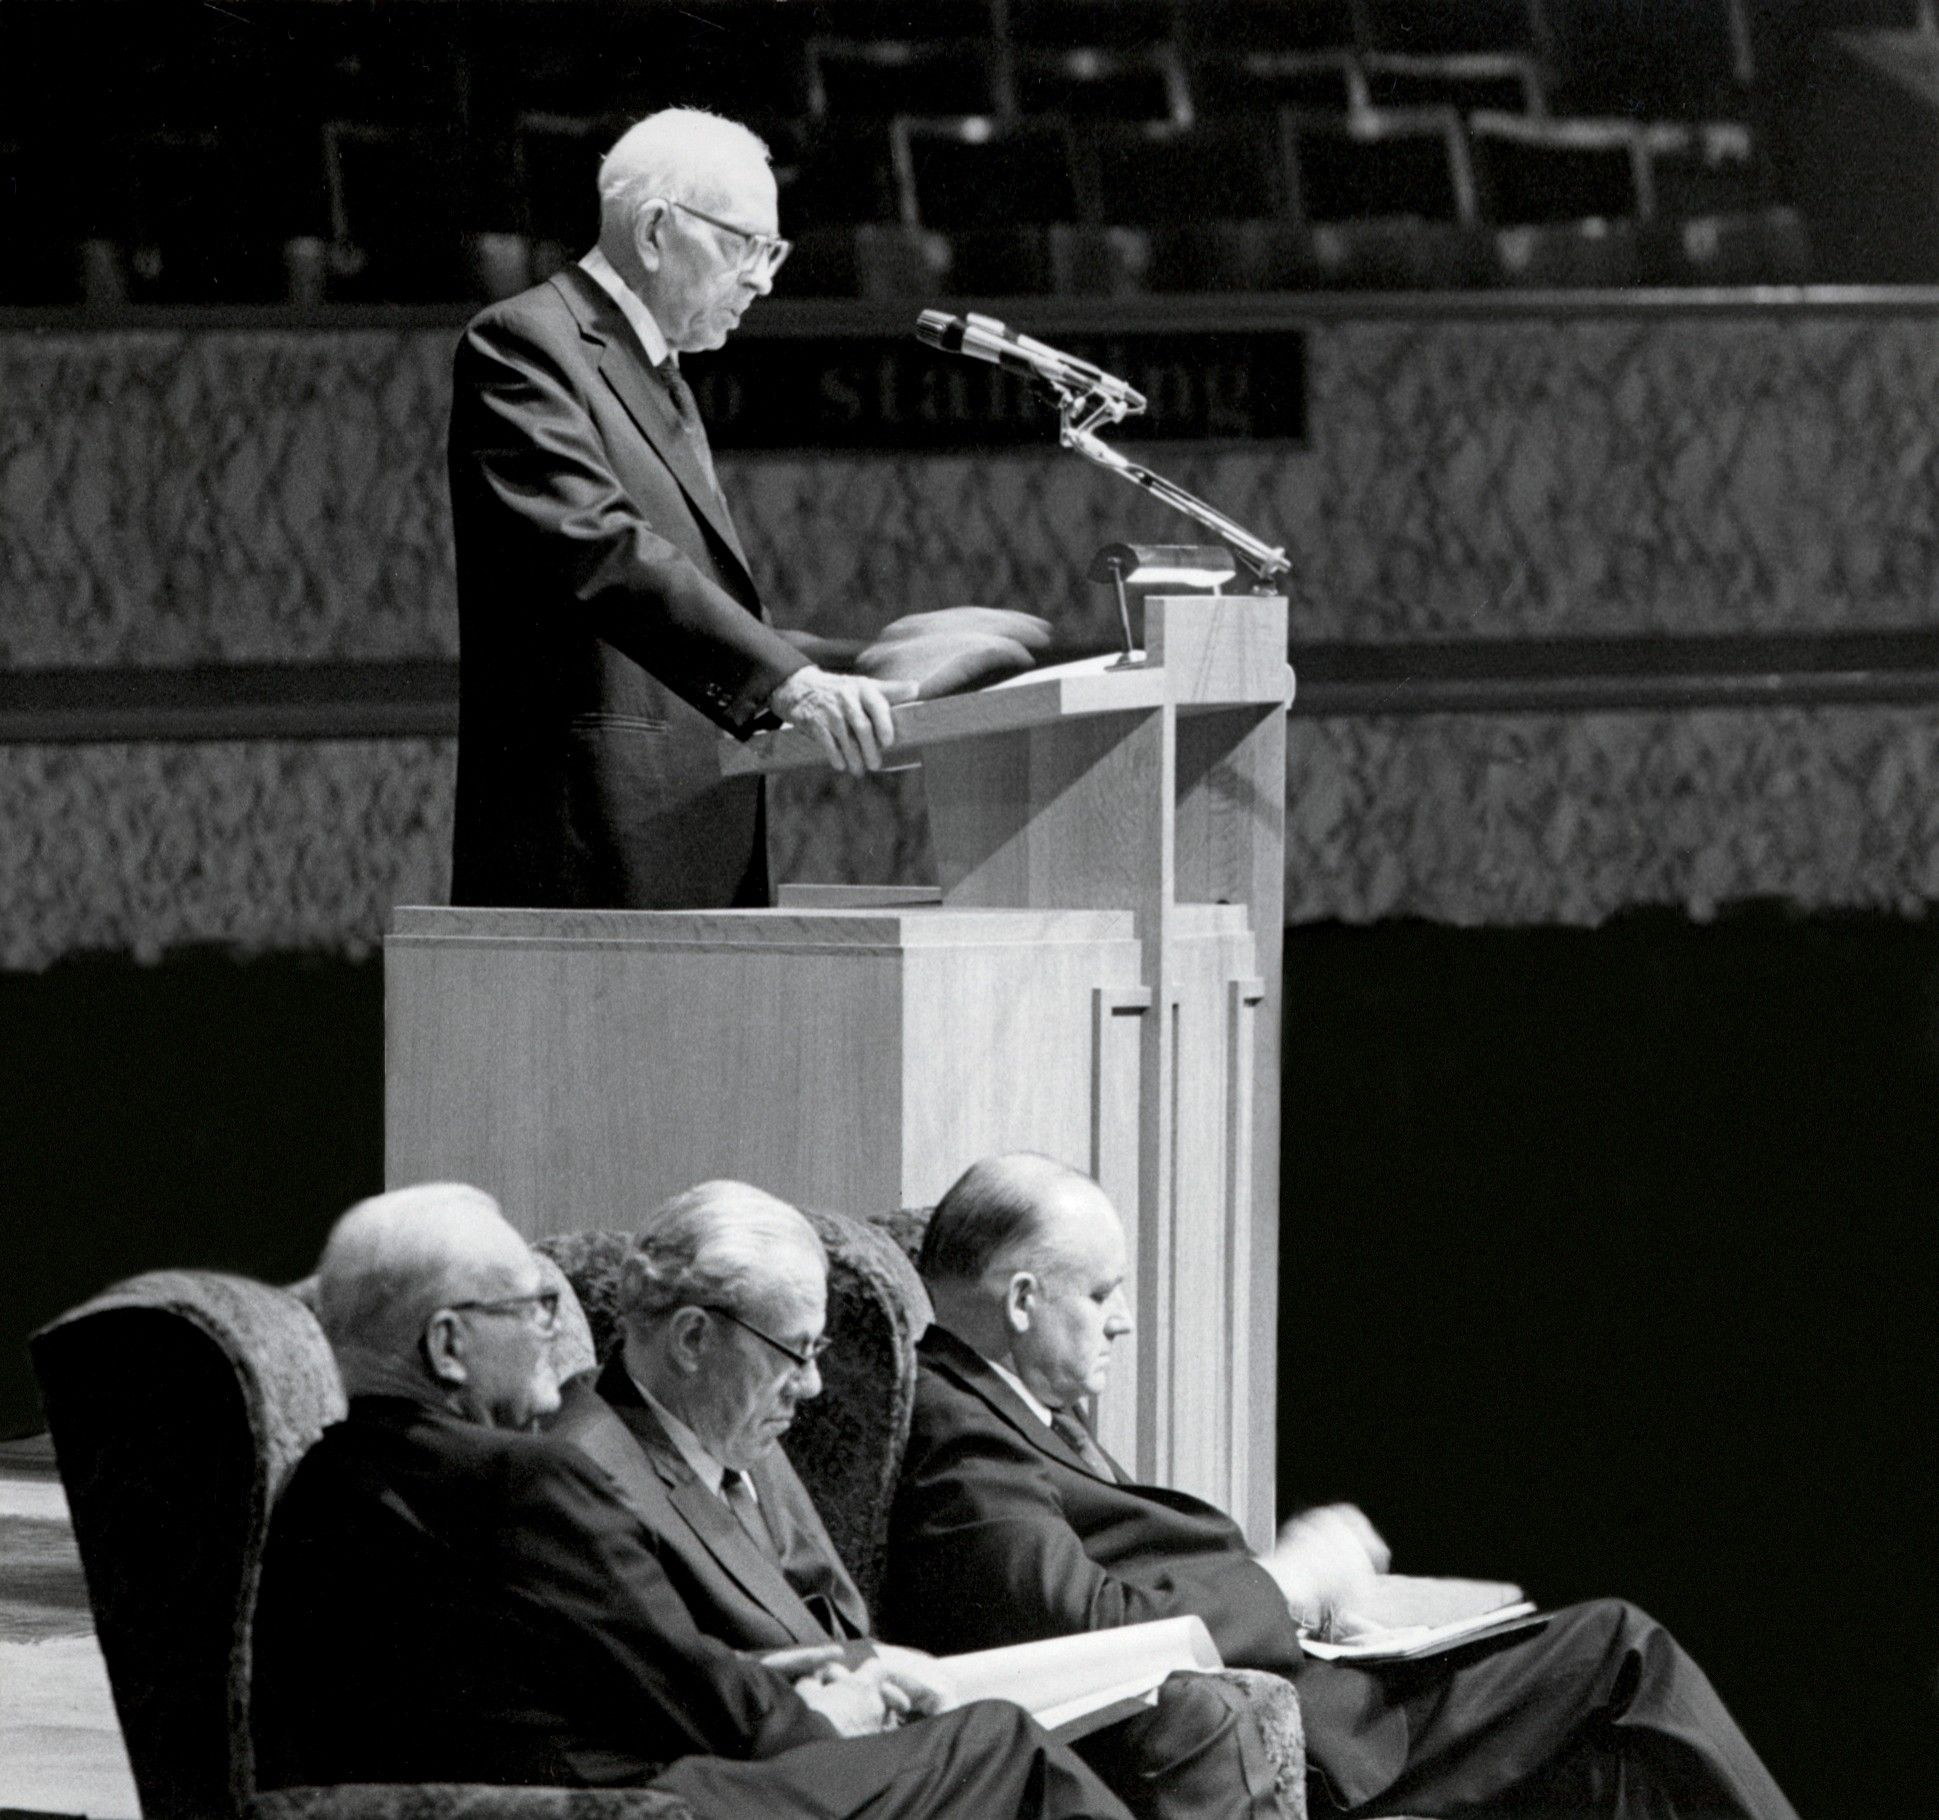 Joseph Fielding Smith standing and speaking at the Manchester area conference in 1971. Teachings of Presidents of the Church: Joseph Fielding Smith (2013), 162